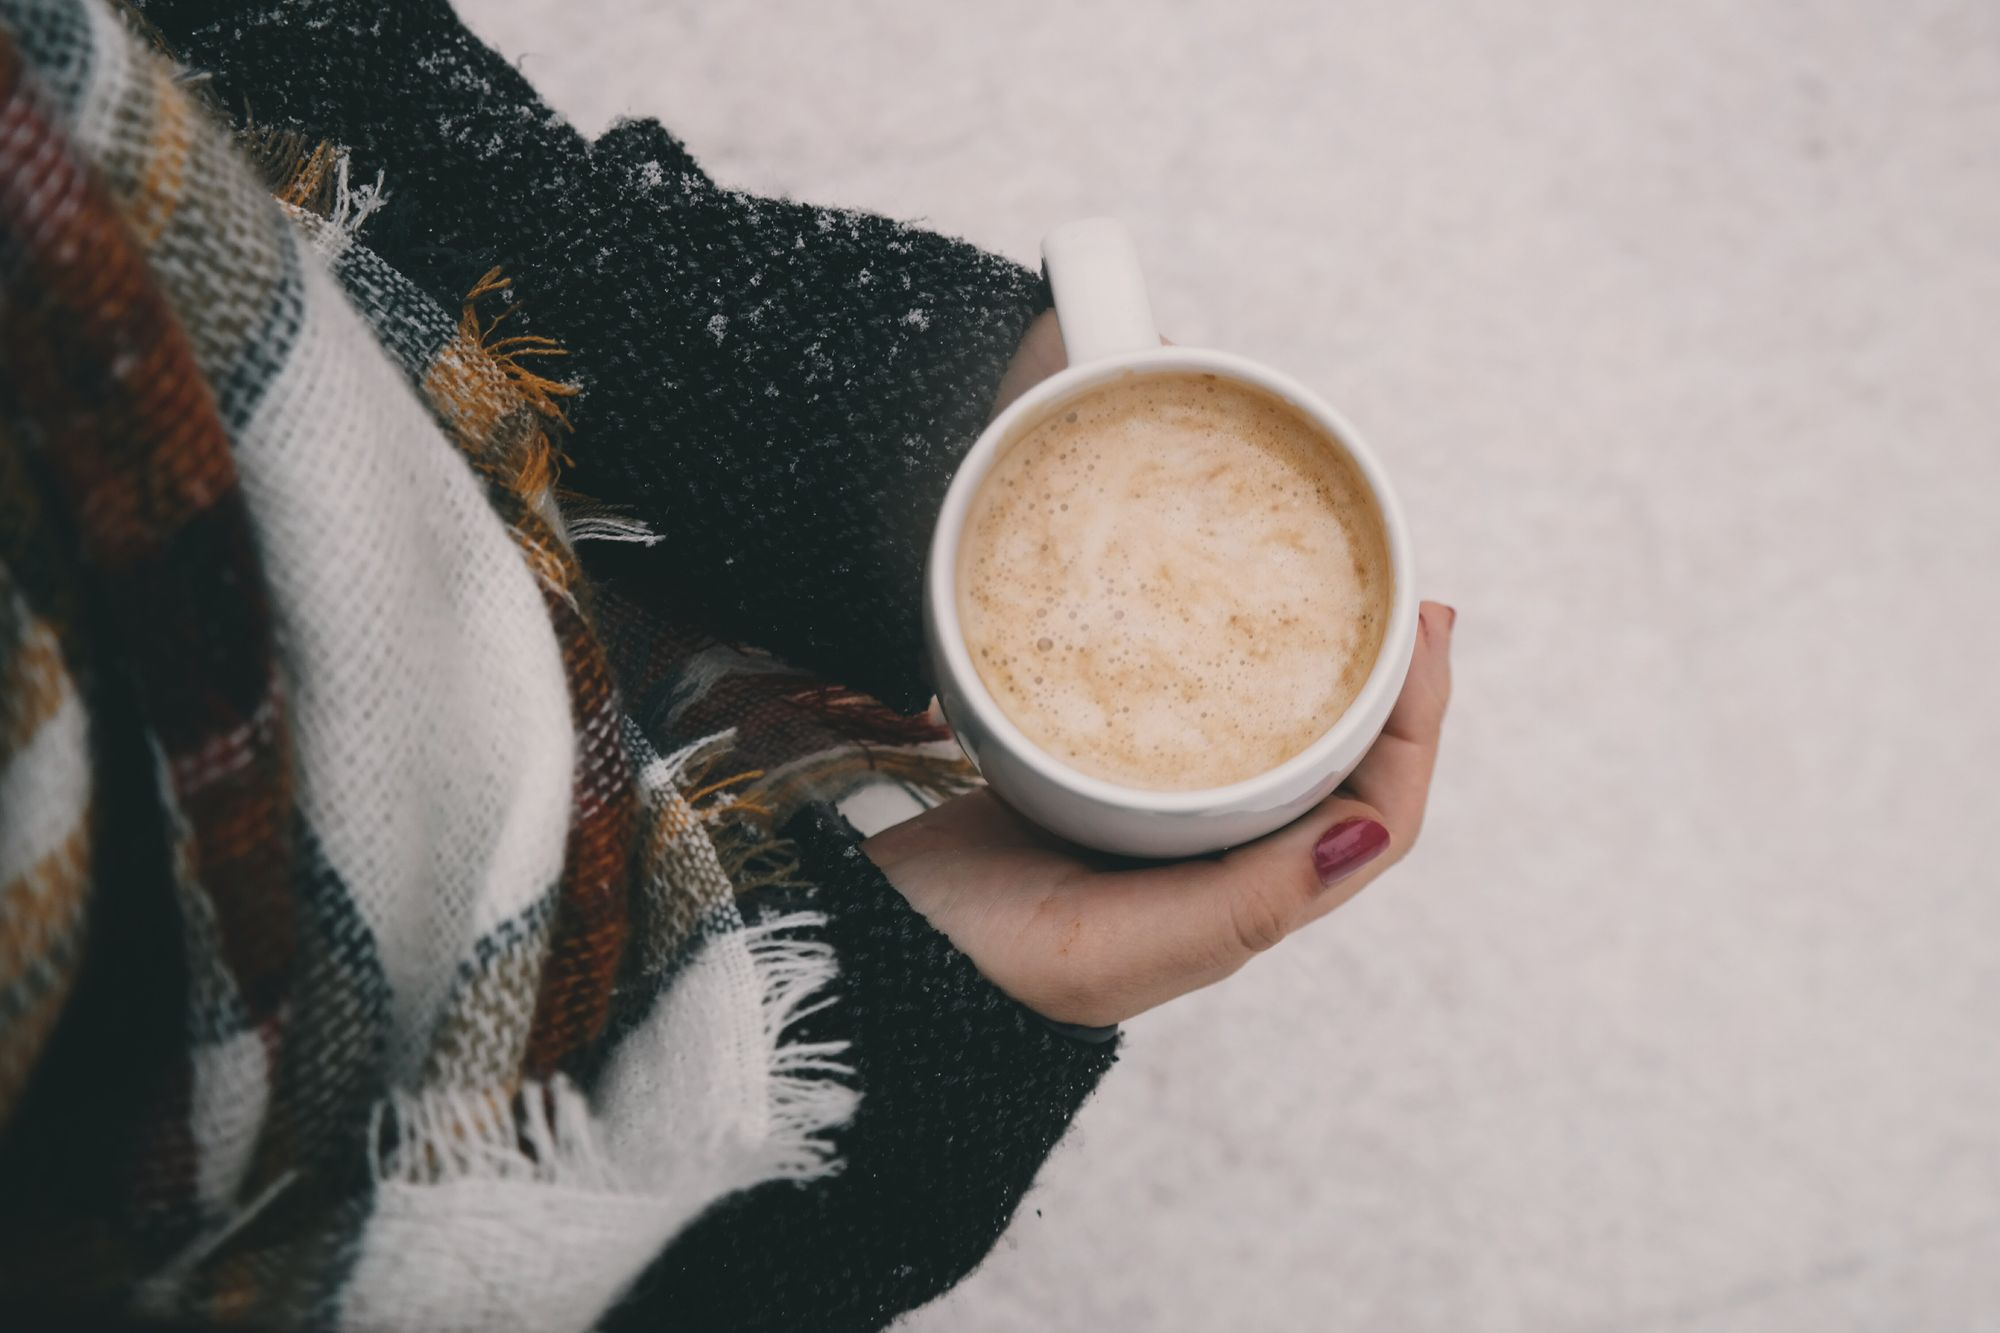 Woman holding coffee in a winter setting